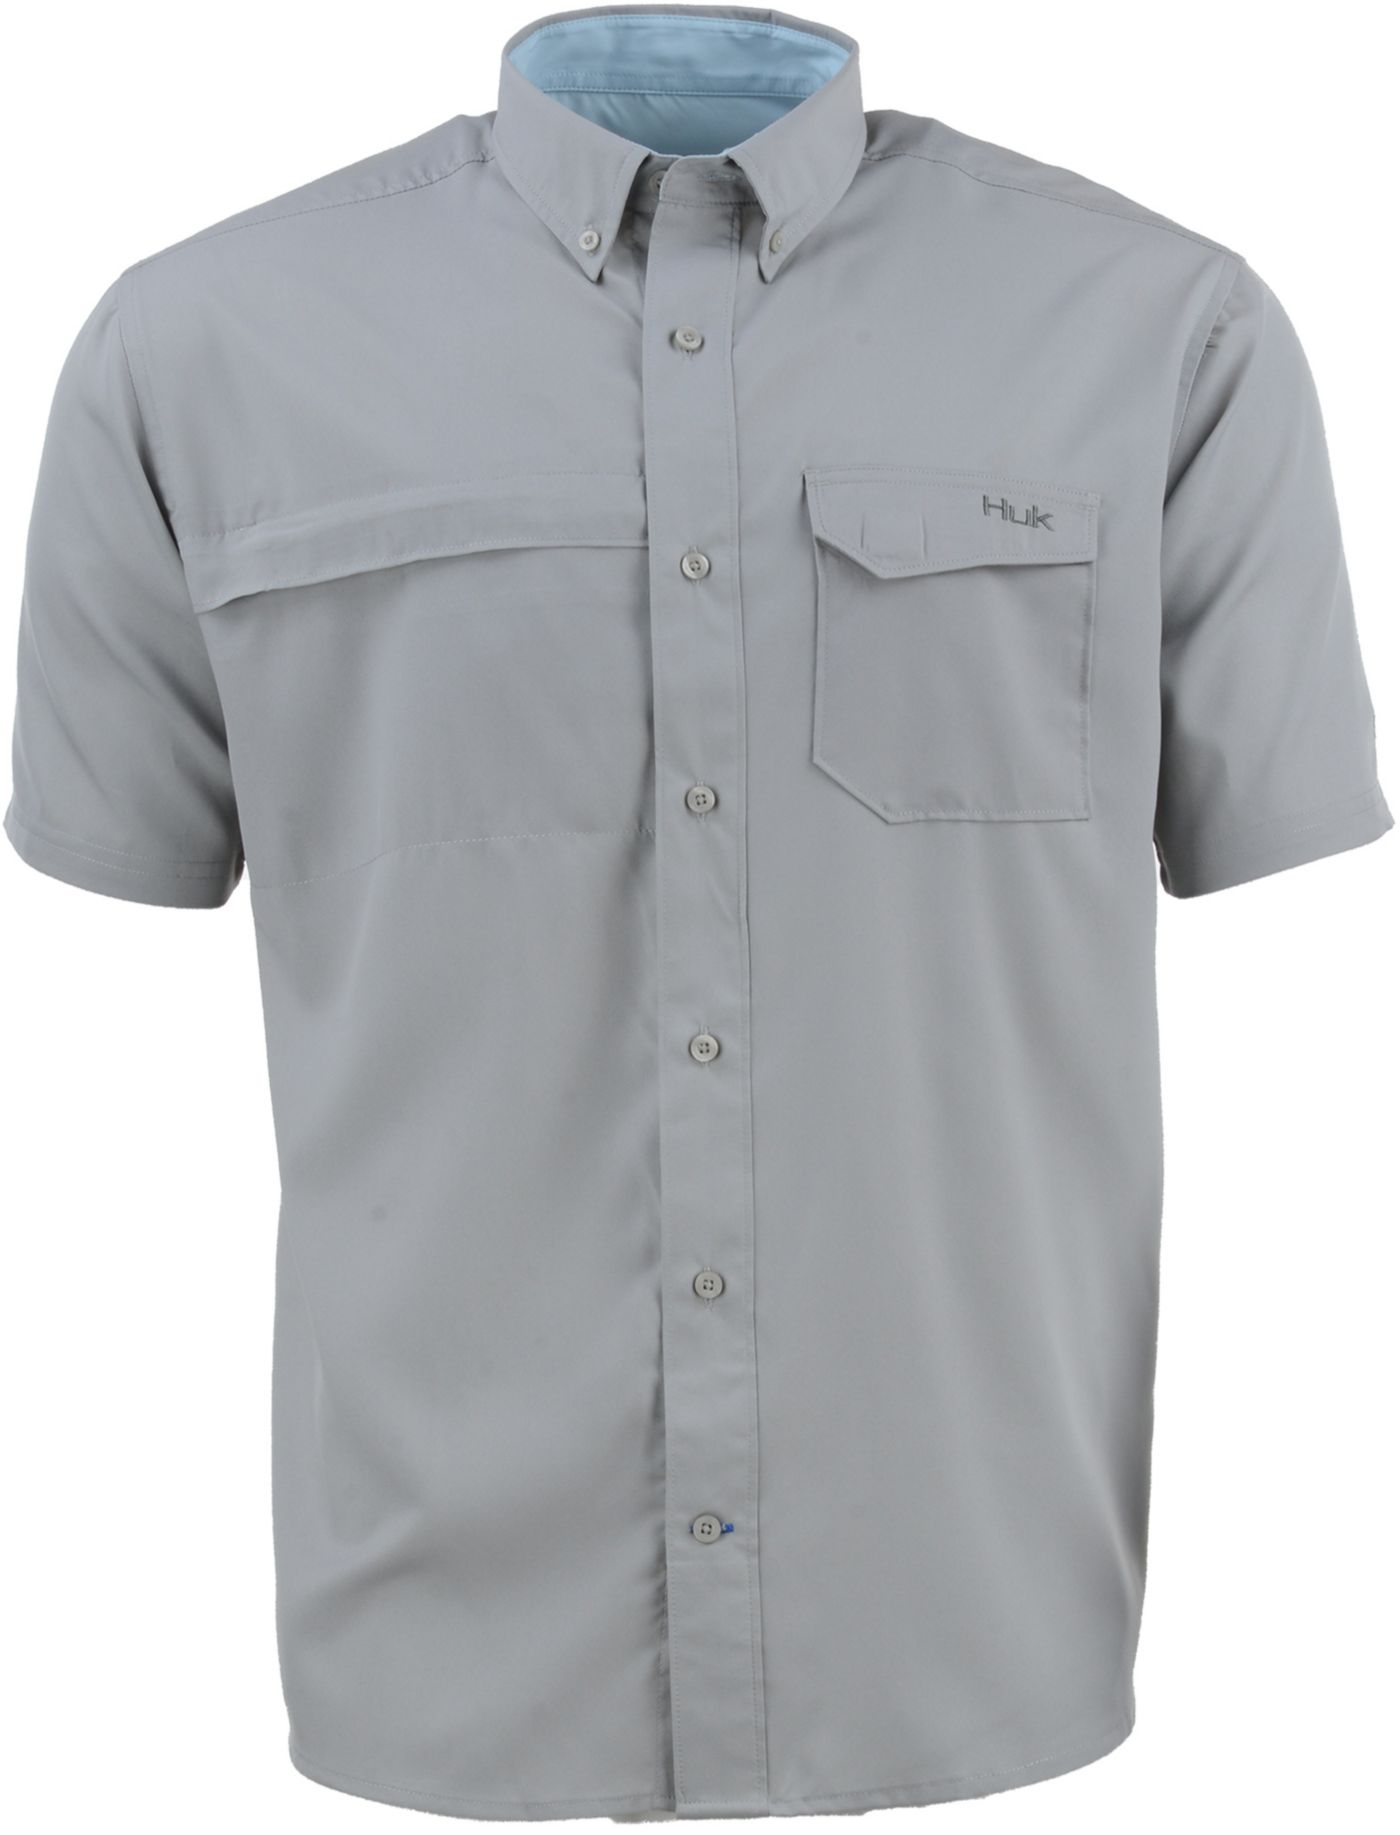 HUK Men's Tide Point Woven Solid Button Down Short Sleeve Shirt